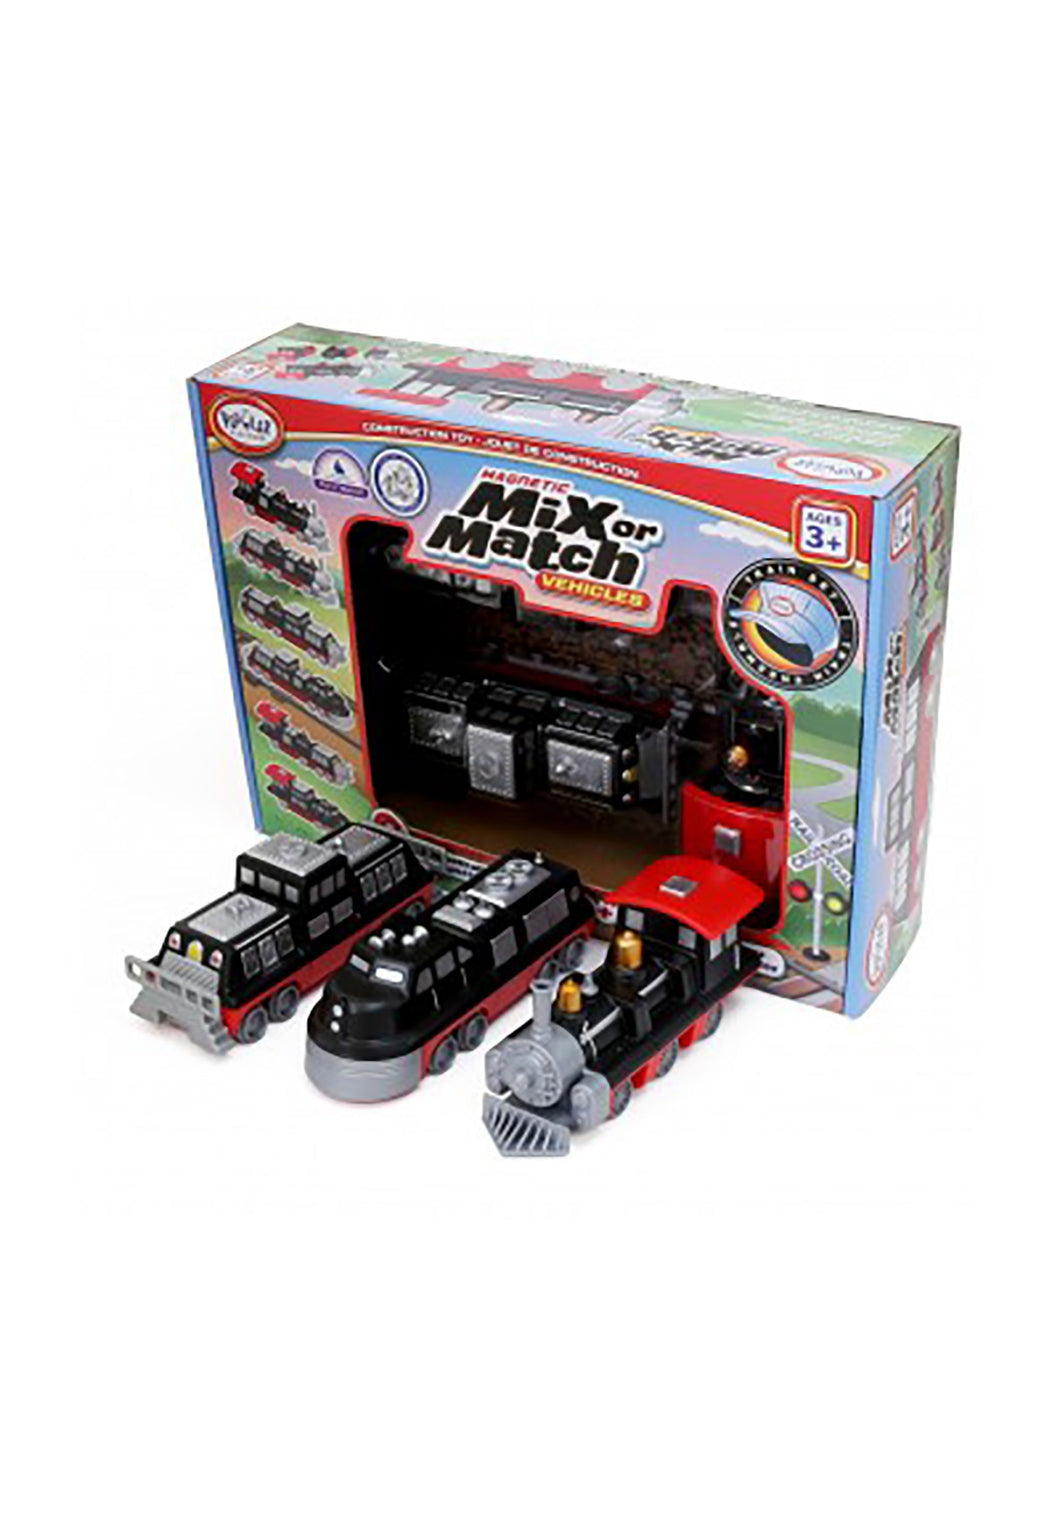 Popular Playthings Mix or Match Vehicles Diesel Train Standard